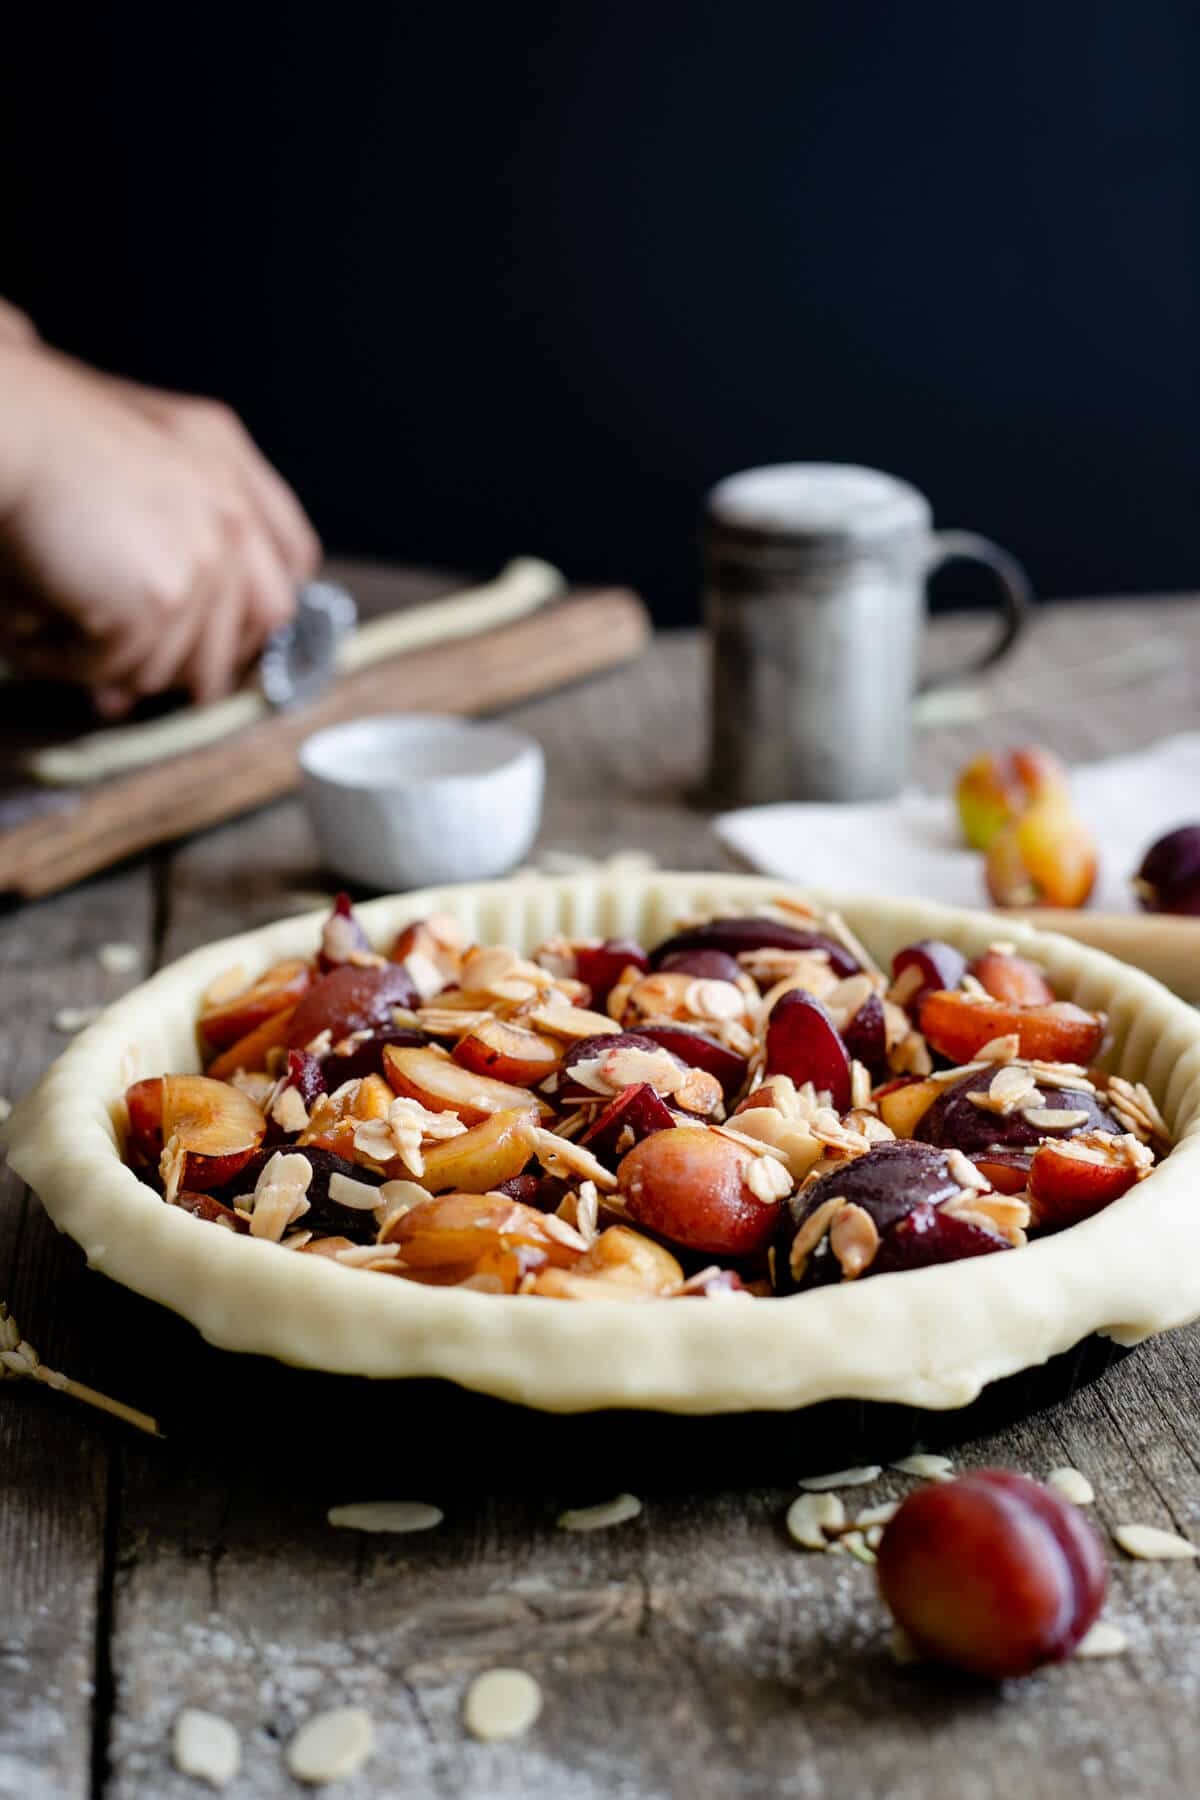 Unbaked plum pie with almonds